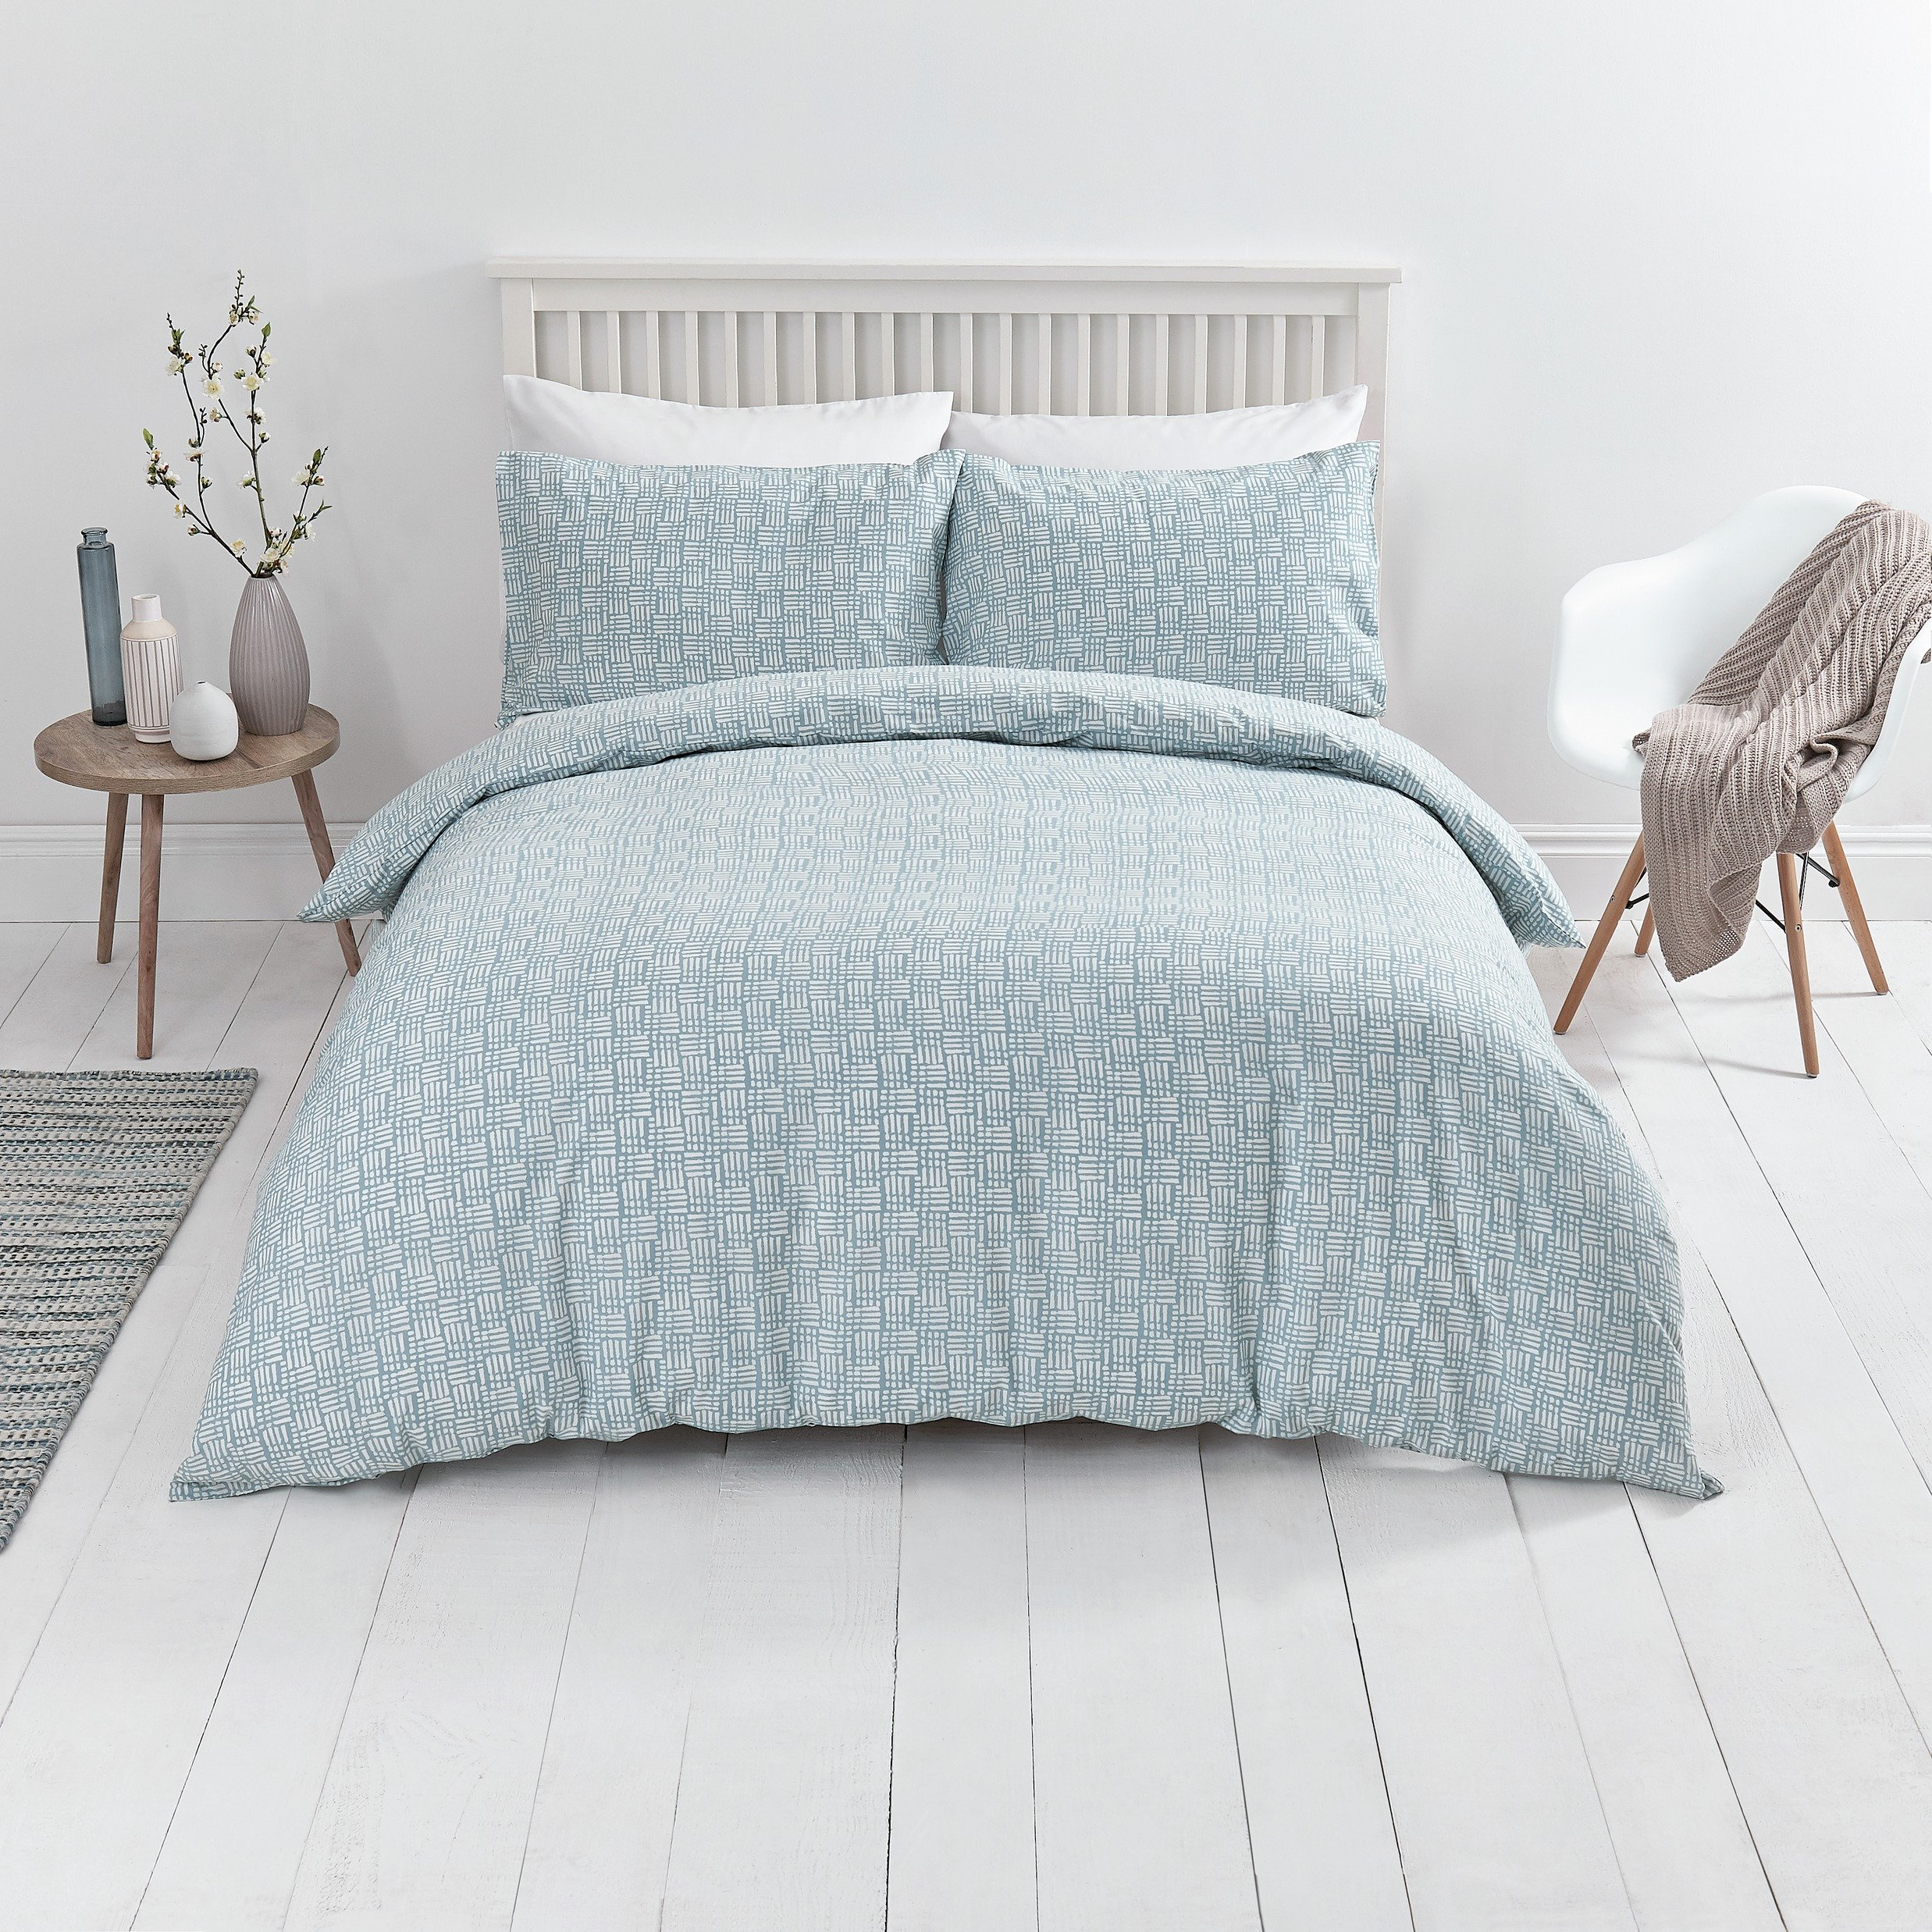 Sale On Sainsbury S Home Blue Nordic Sky Duvet Cover Set